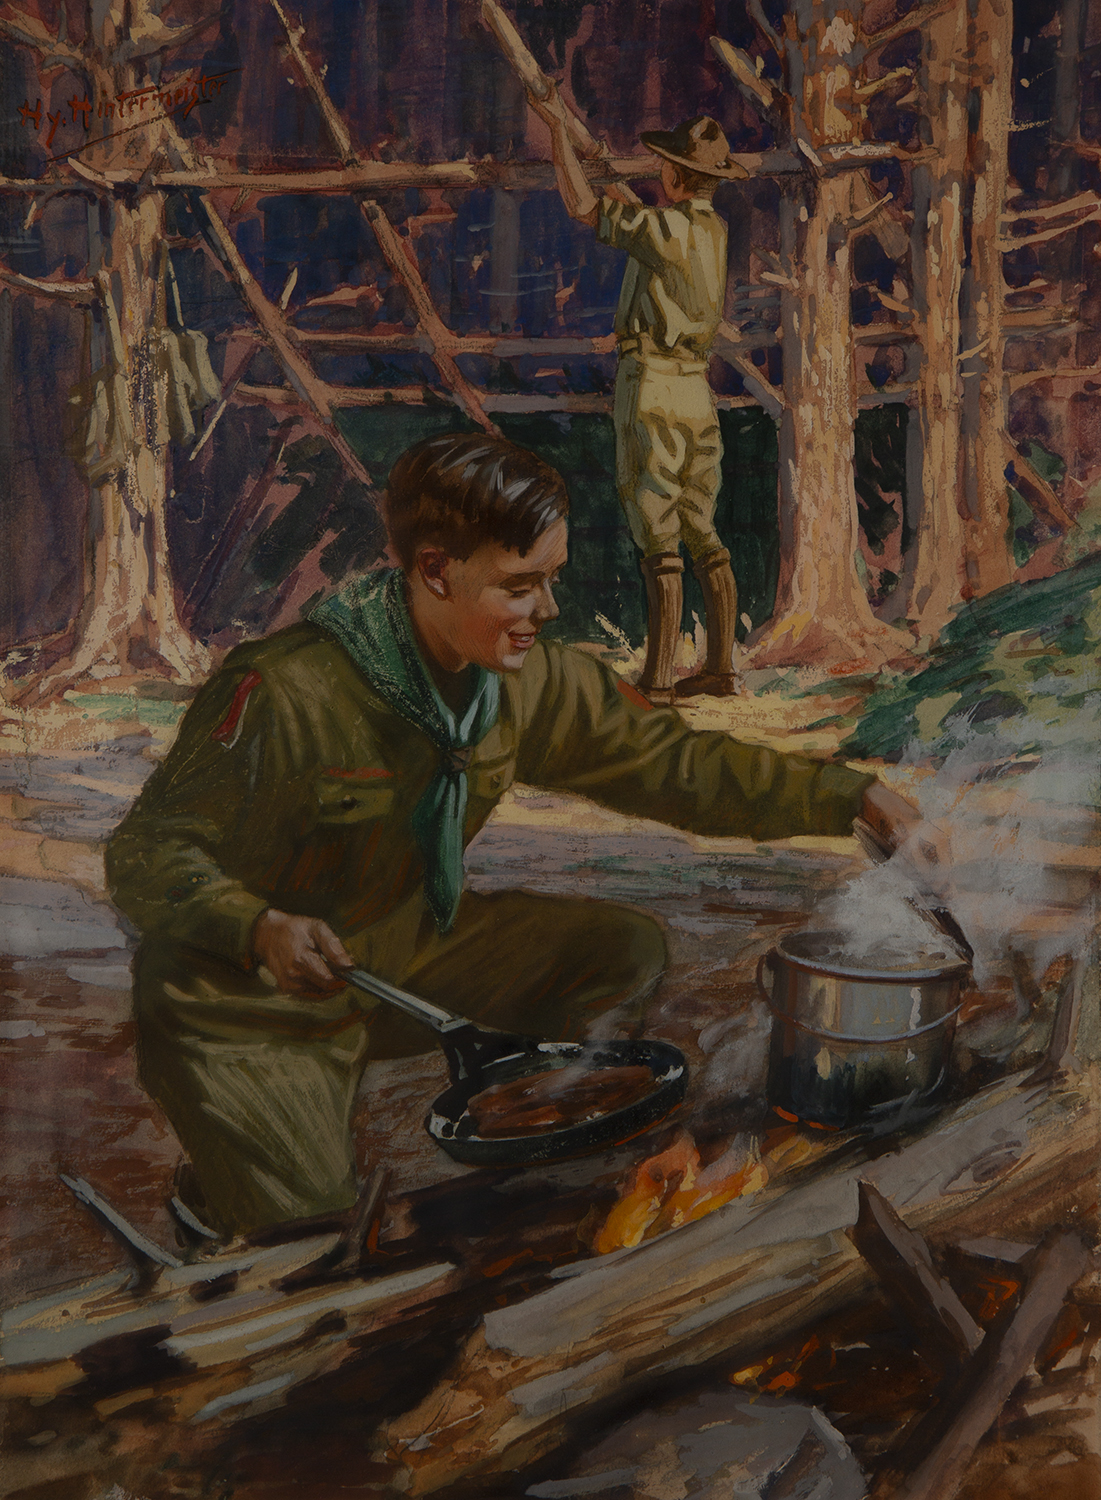 A Boy Scout camping over an open fire while another builds a shelter among the trees in the background